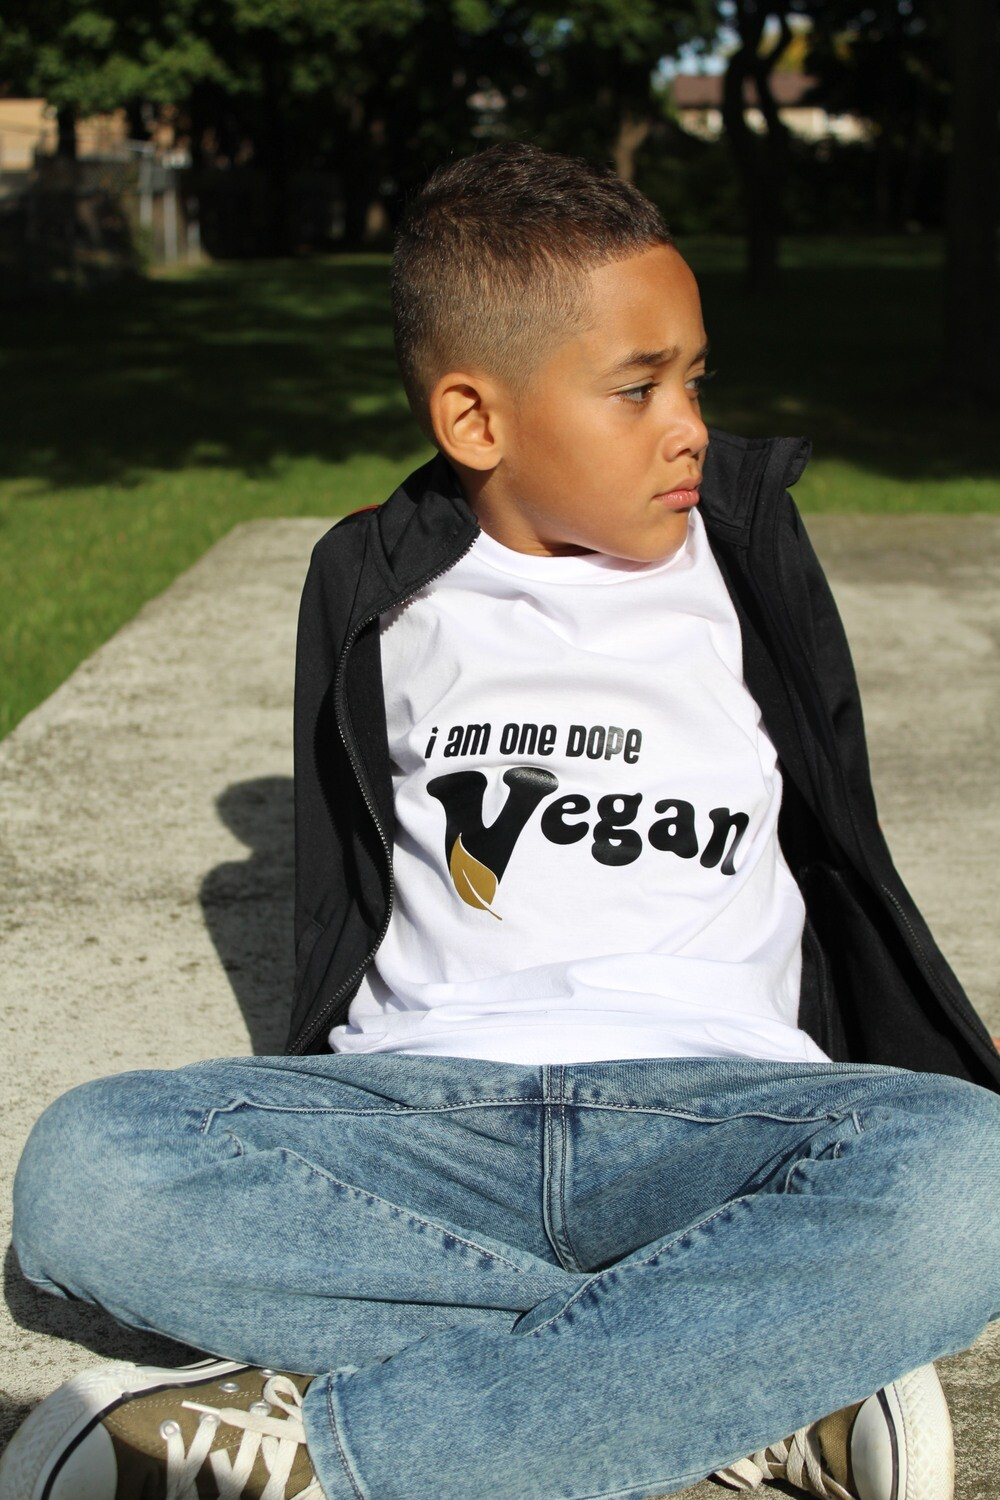 I am one dope Vegan - Kids Tees